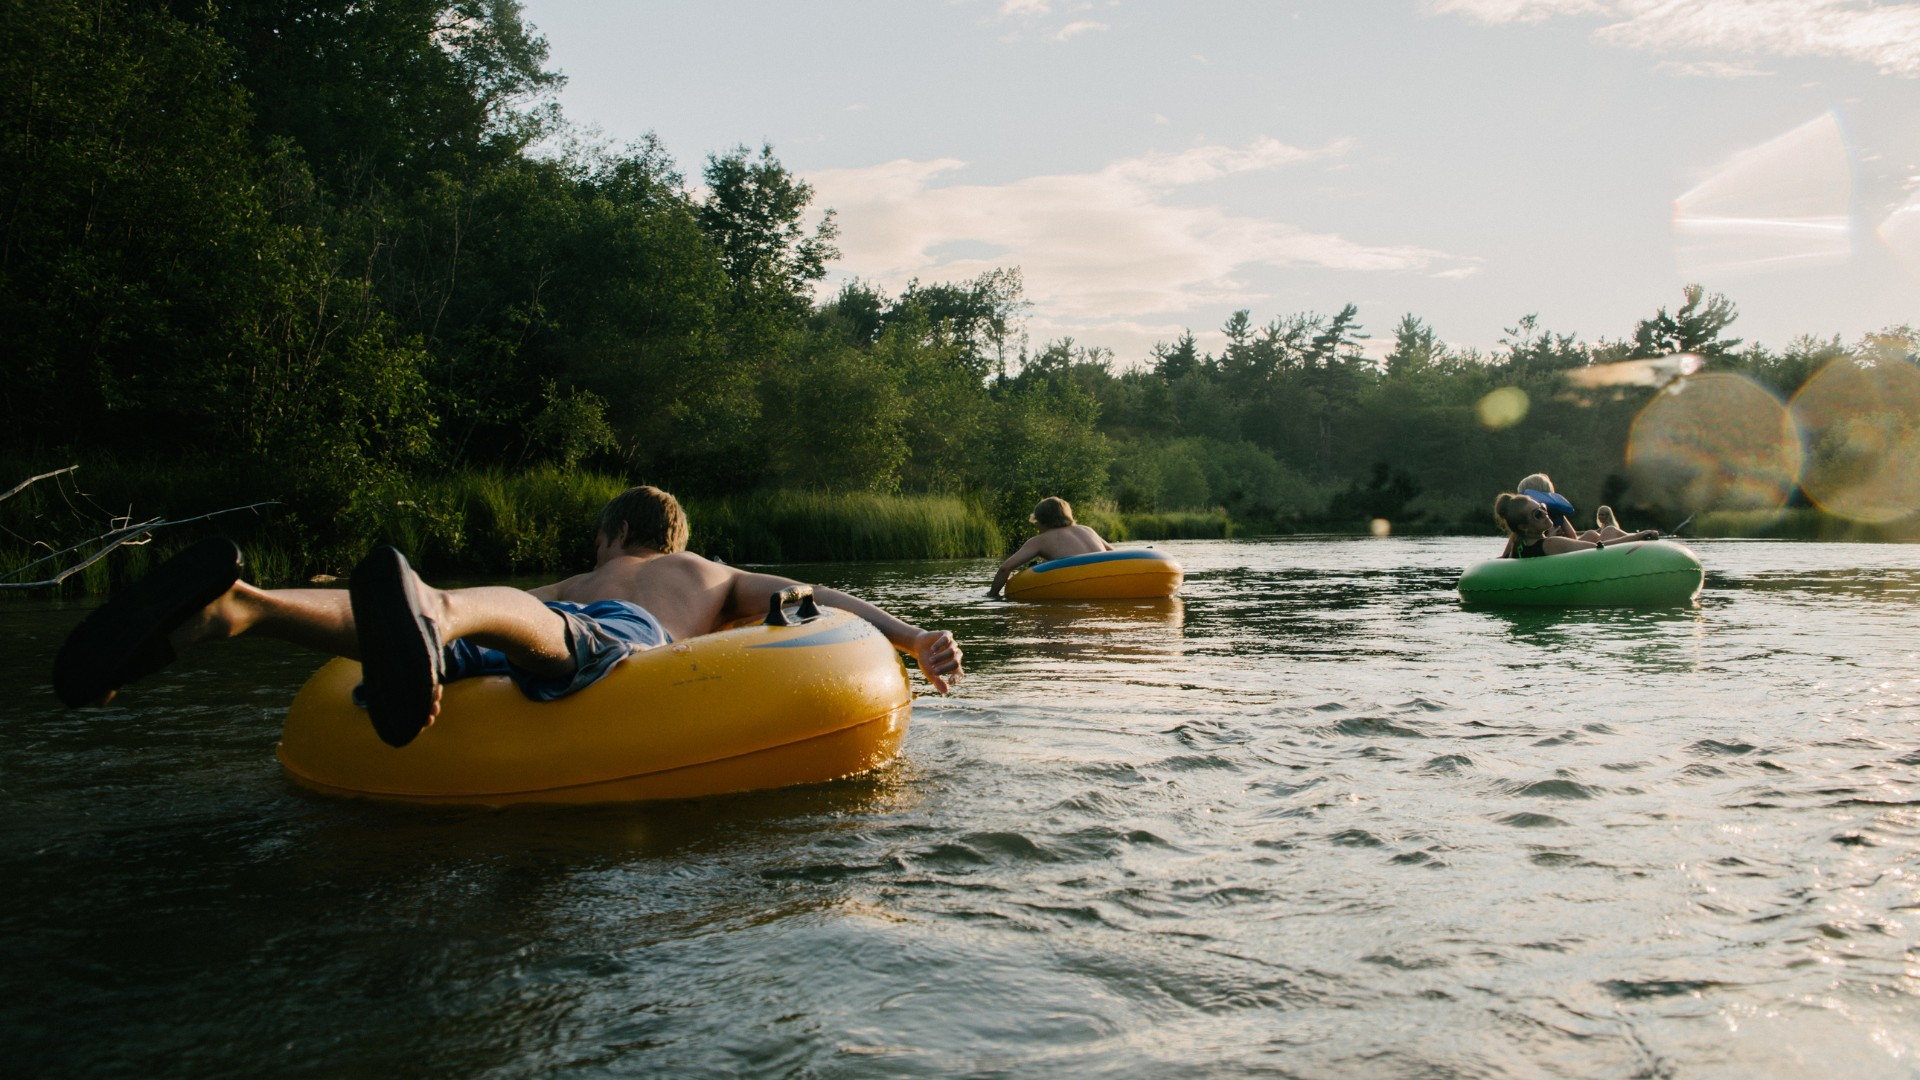 A family enjoying their Killington River Tubing